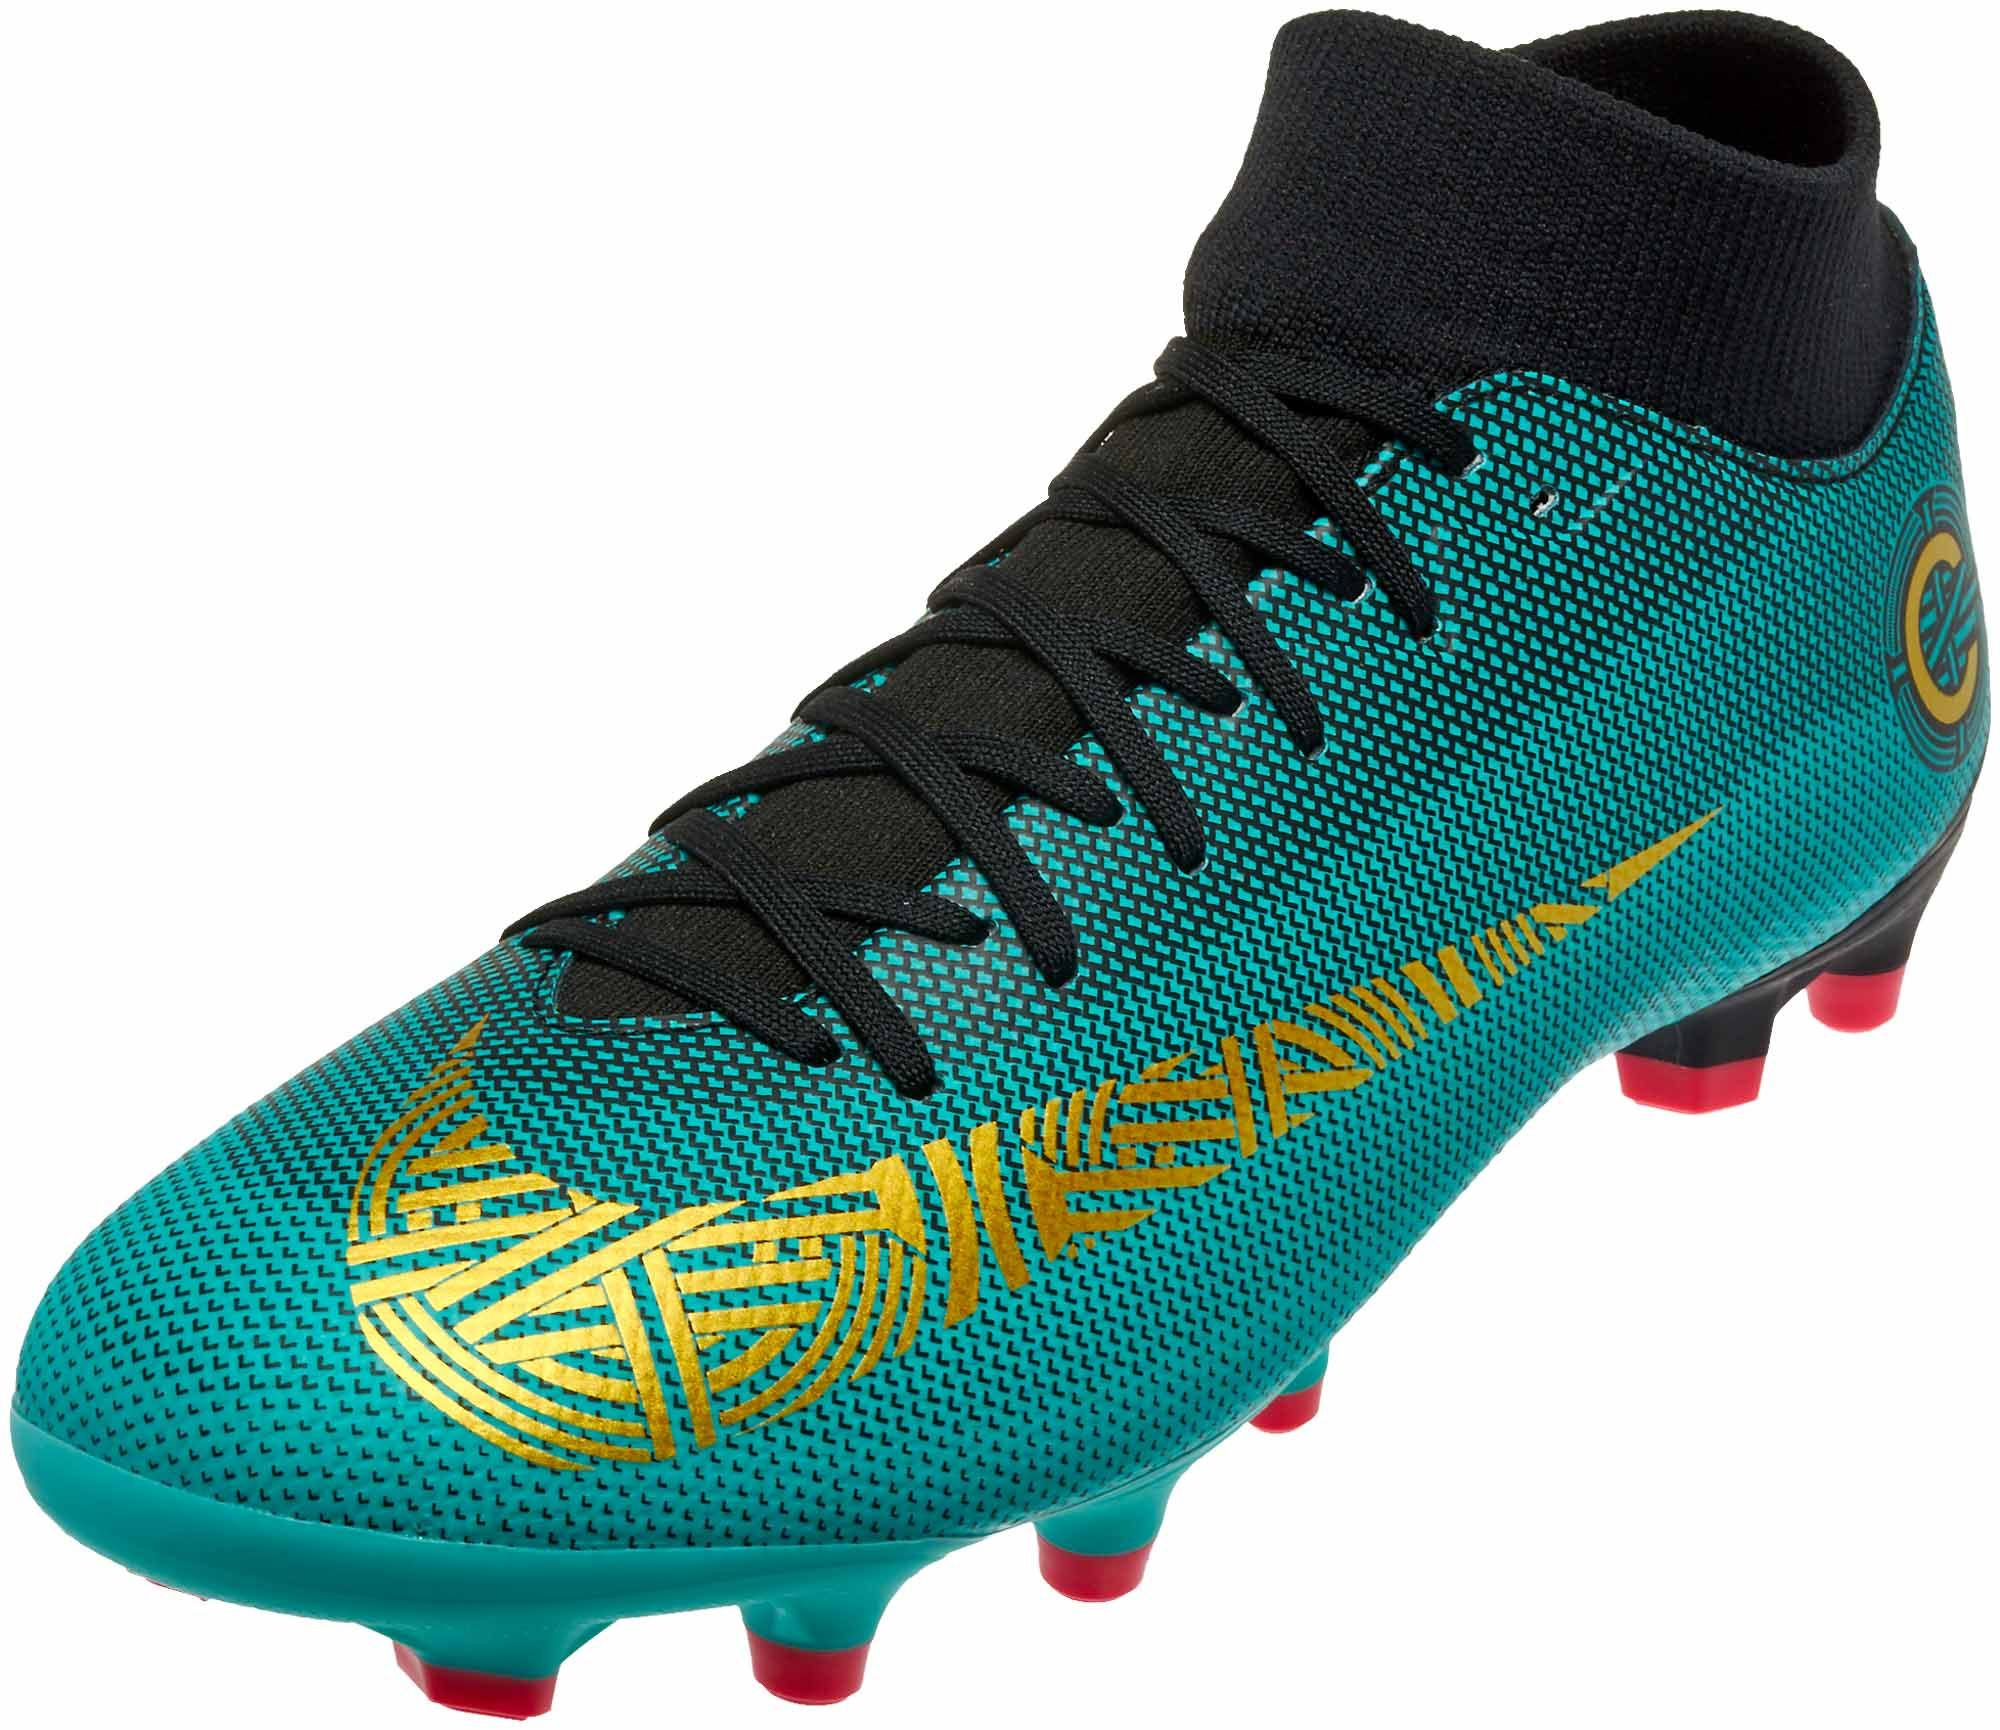 half off 5b198 69731 Nike Mercurial Superfly 6 Academy Soccer Cleats. Get a pair from SoccerPro.